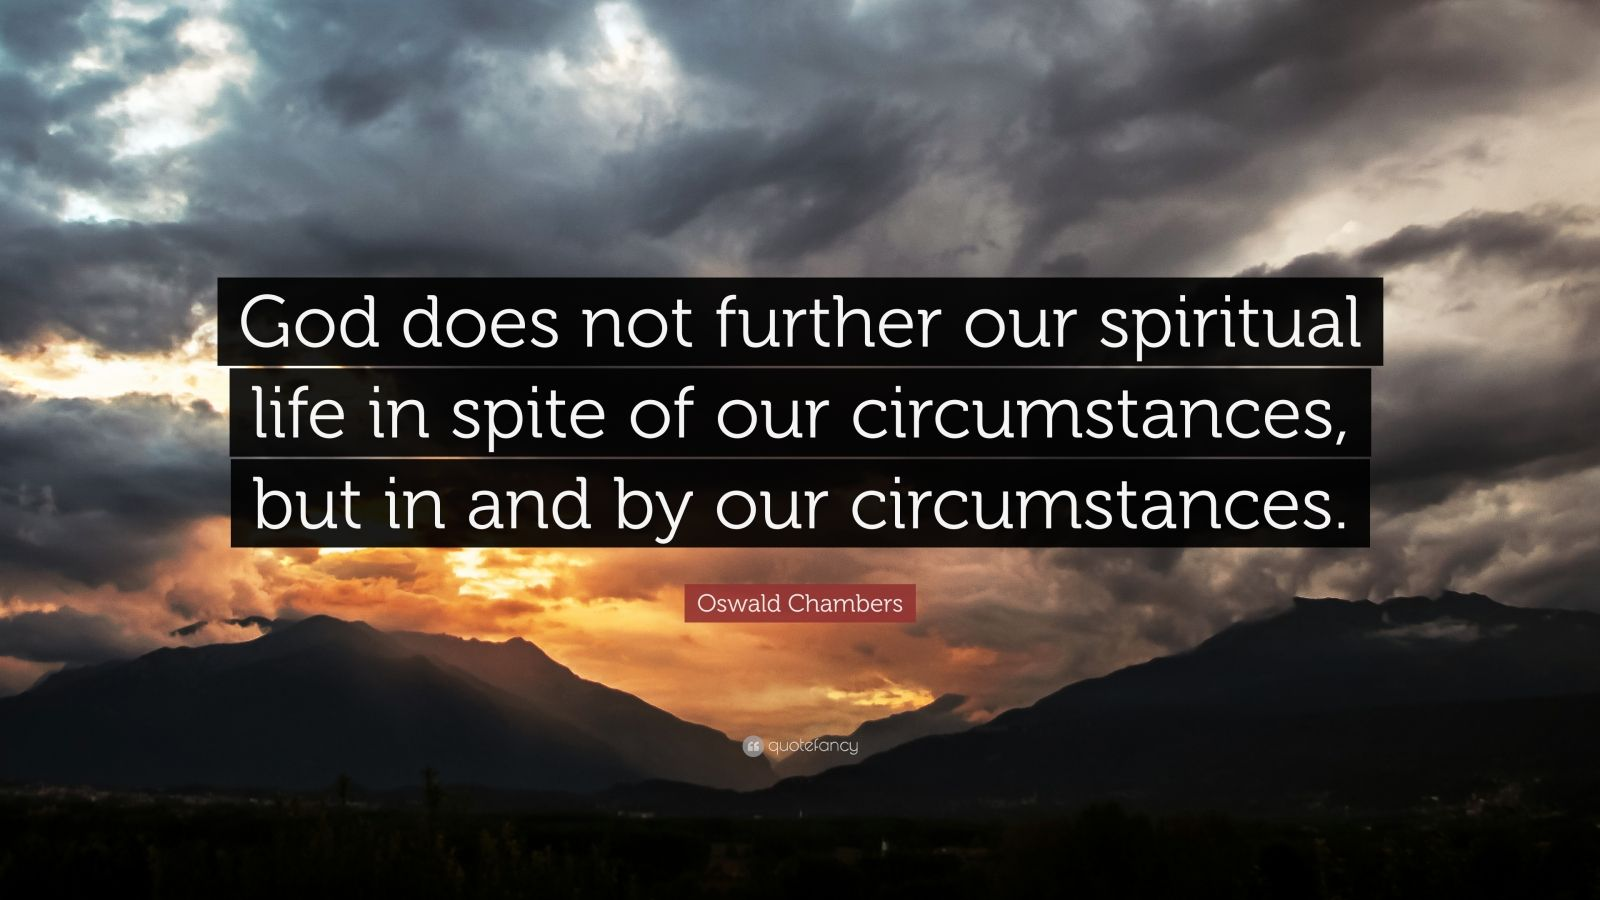 """Oswald Chambers Quote: """"God does not further our spiritual life in spite of our circumstances, but in and by our circumstances."""""""